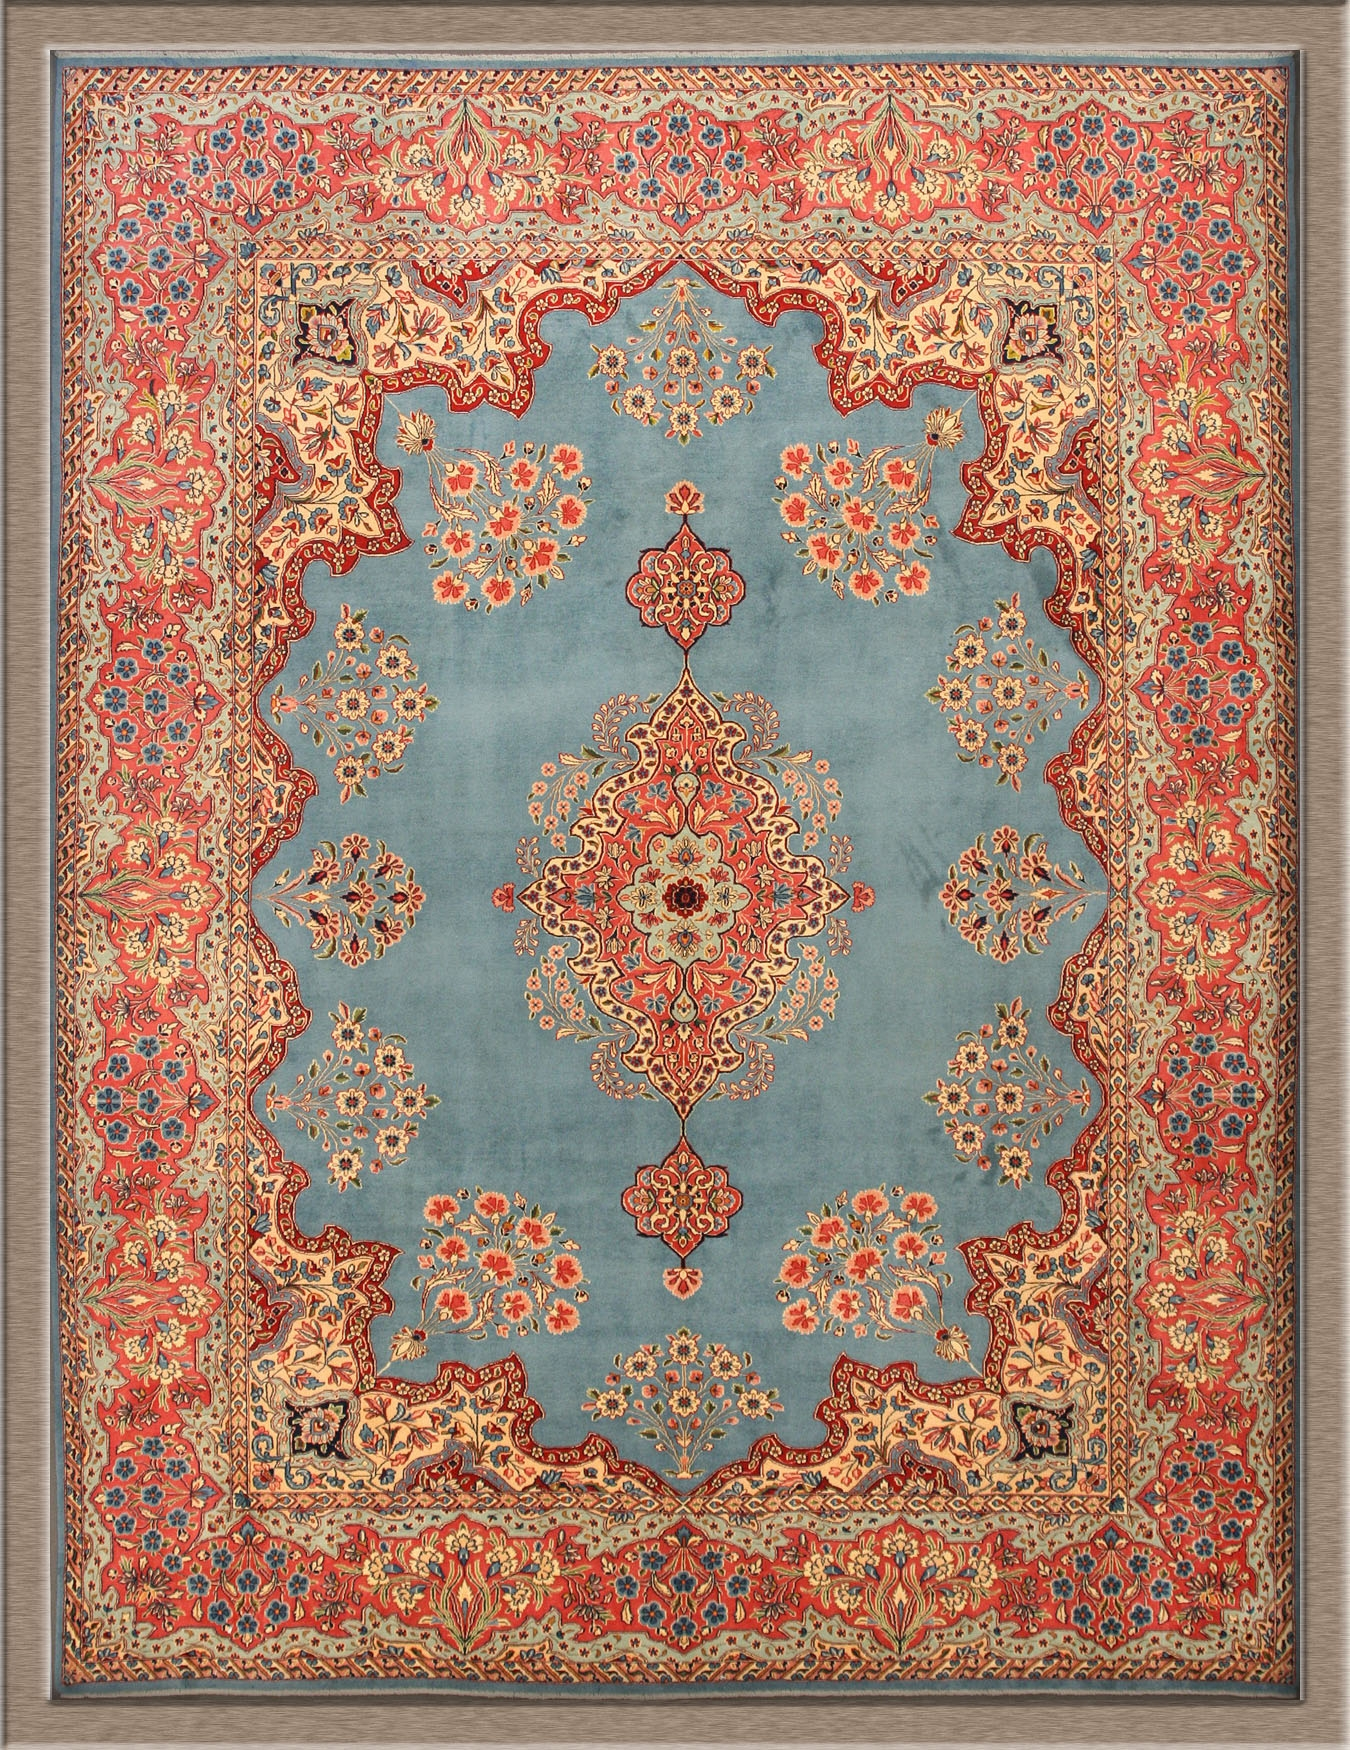 The Exotic Persian Rugs For Your Living Room Floor Decor Persian With Regard To Blue Persian Rugs (Image 14 of 15)